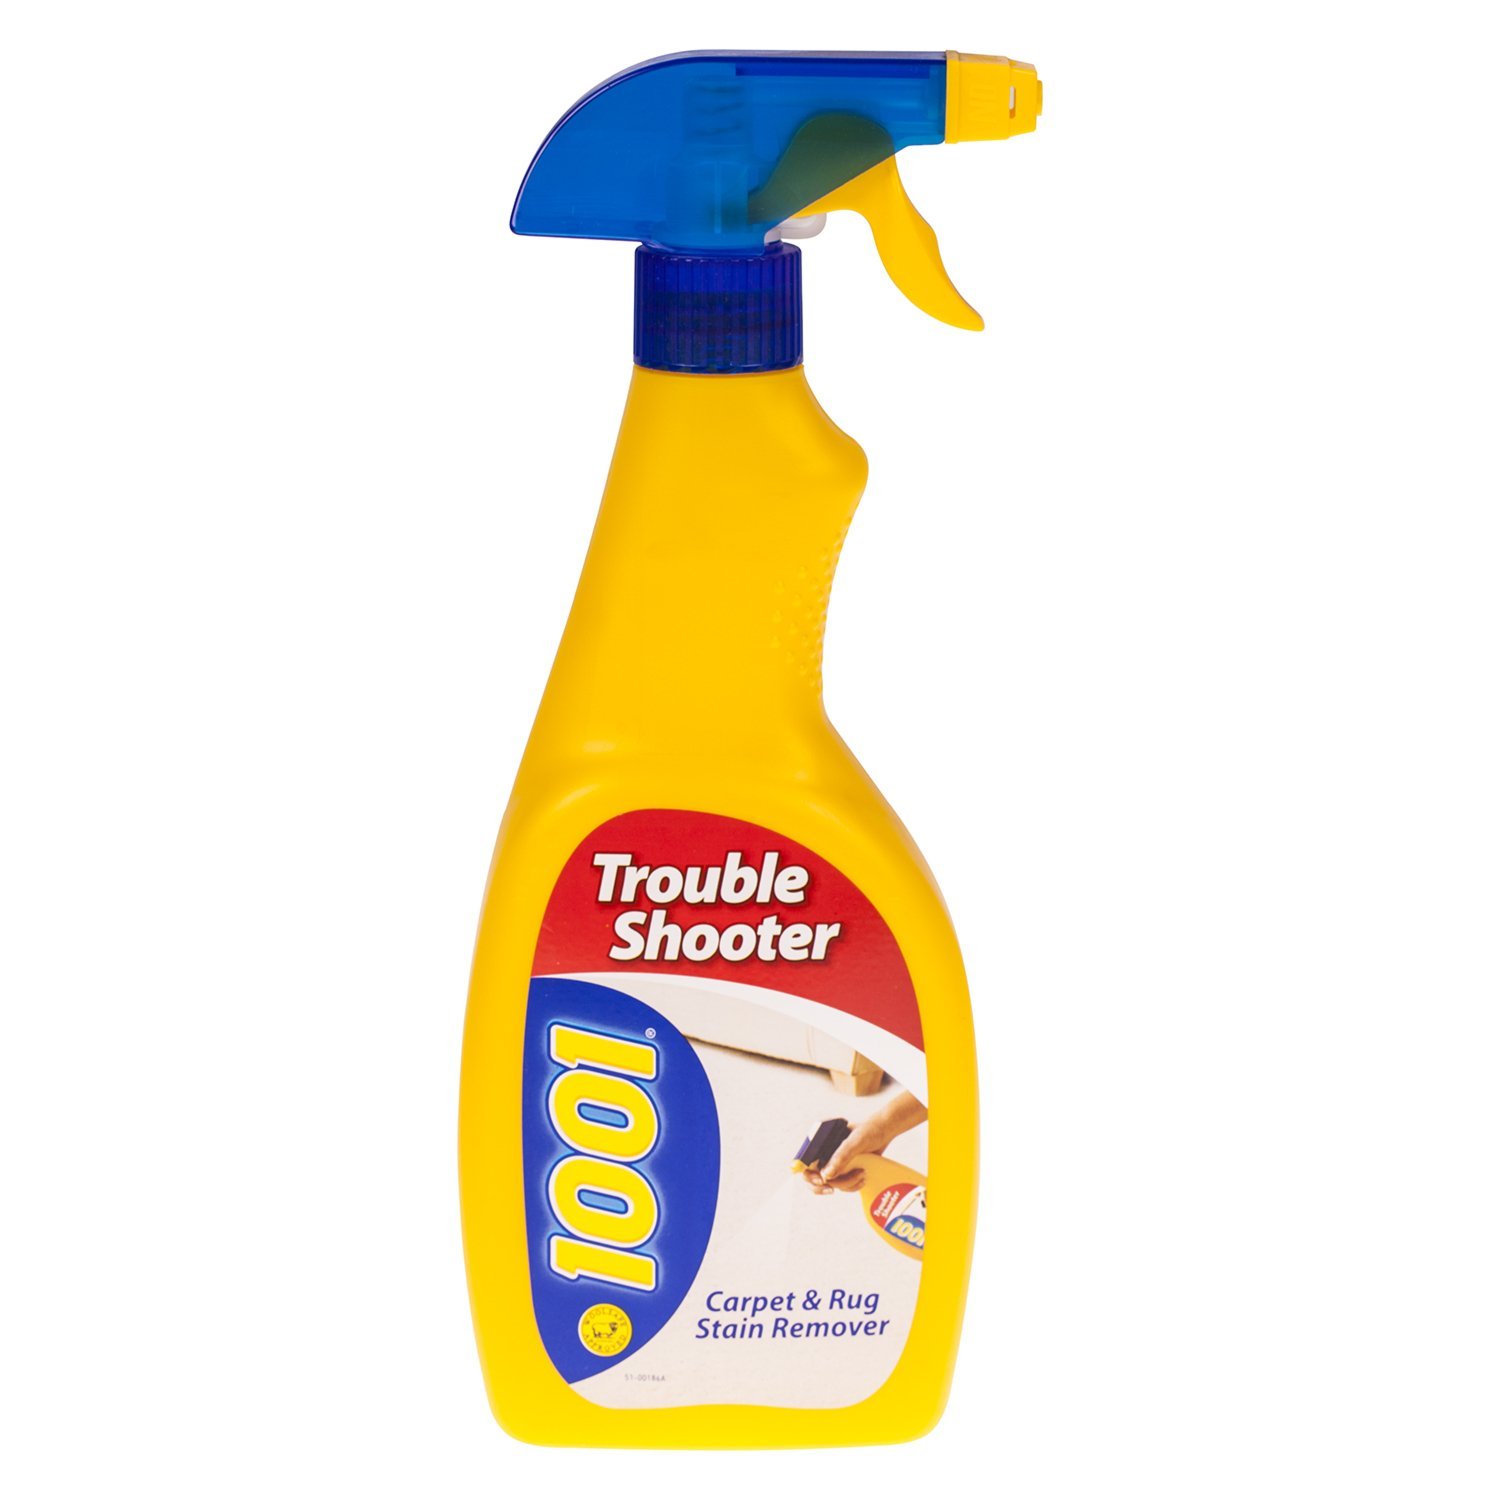 1001 Trouble Shooter Stain Remover For Carpets & Upholstery 500 ml (Pack of 6)